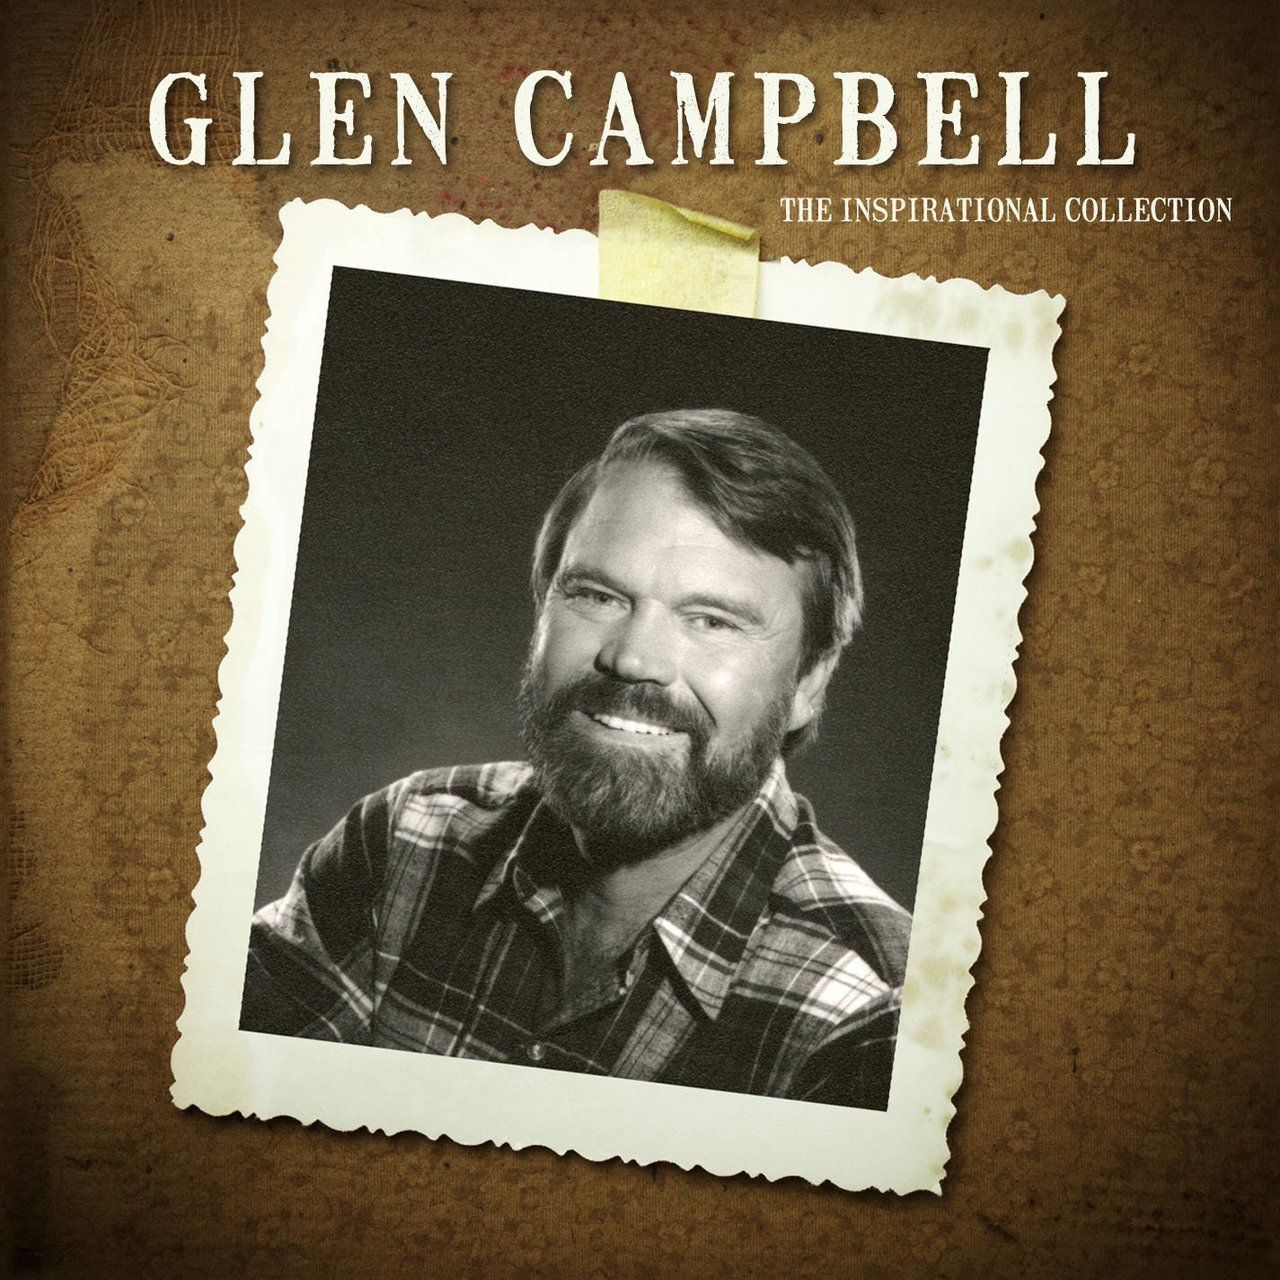 The inspirational collection by glen campbell